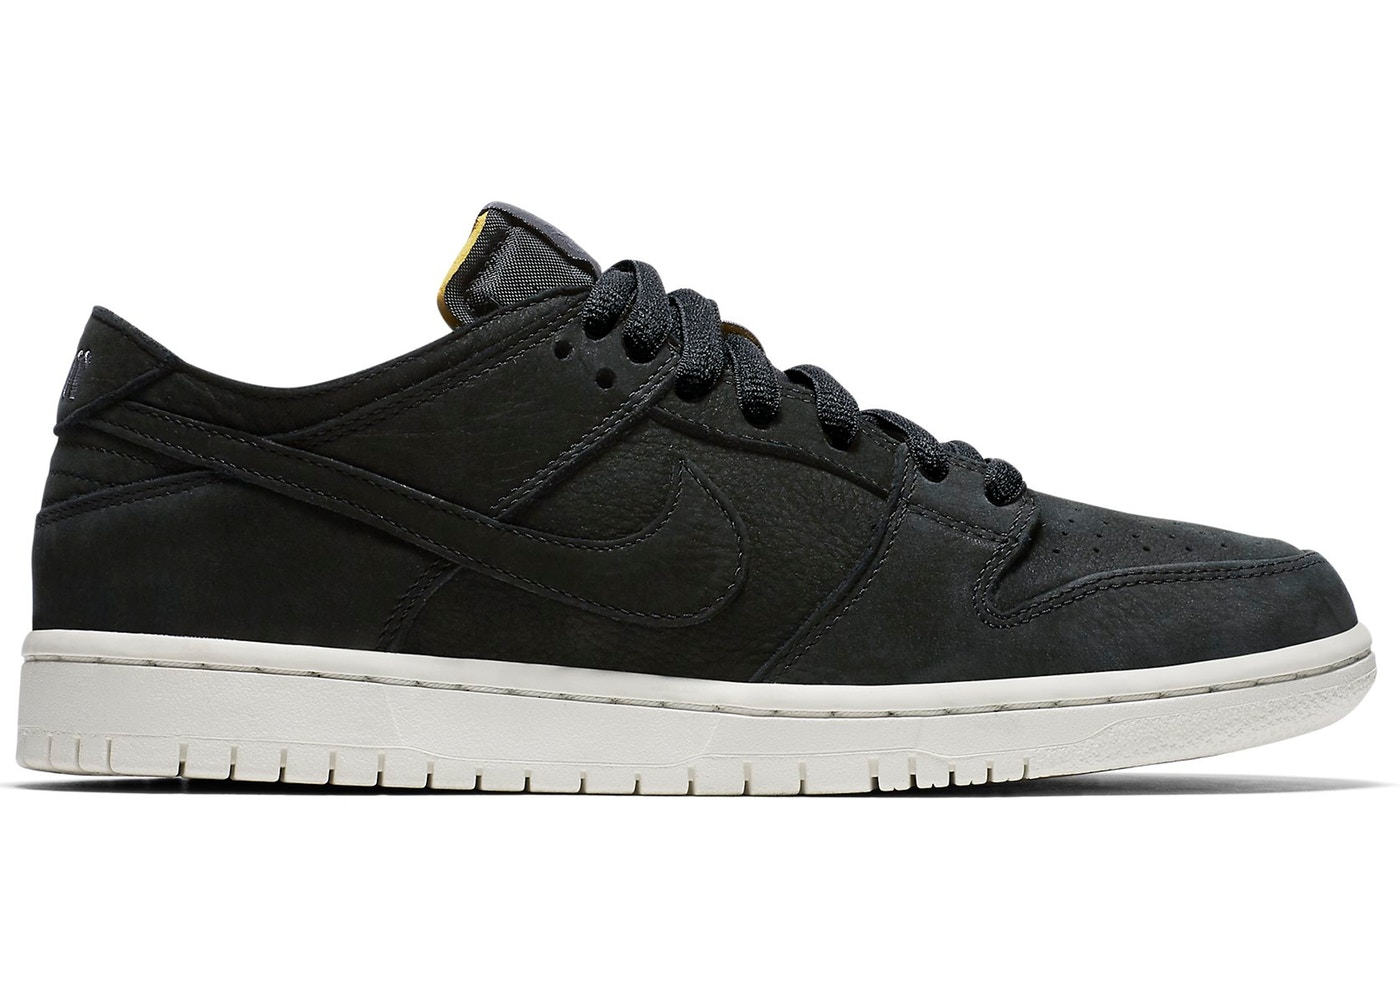 ナイキ NIKE エスビー ダンク スニーカー 【 SB DUNK LOW DECON BLACK BLACKSUMMIT WHITEANTHRACITE 】 メンズ